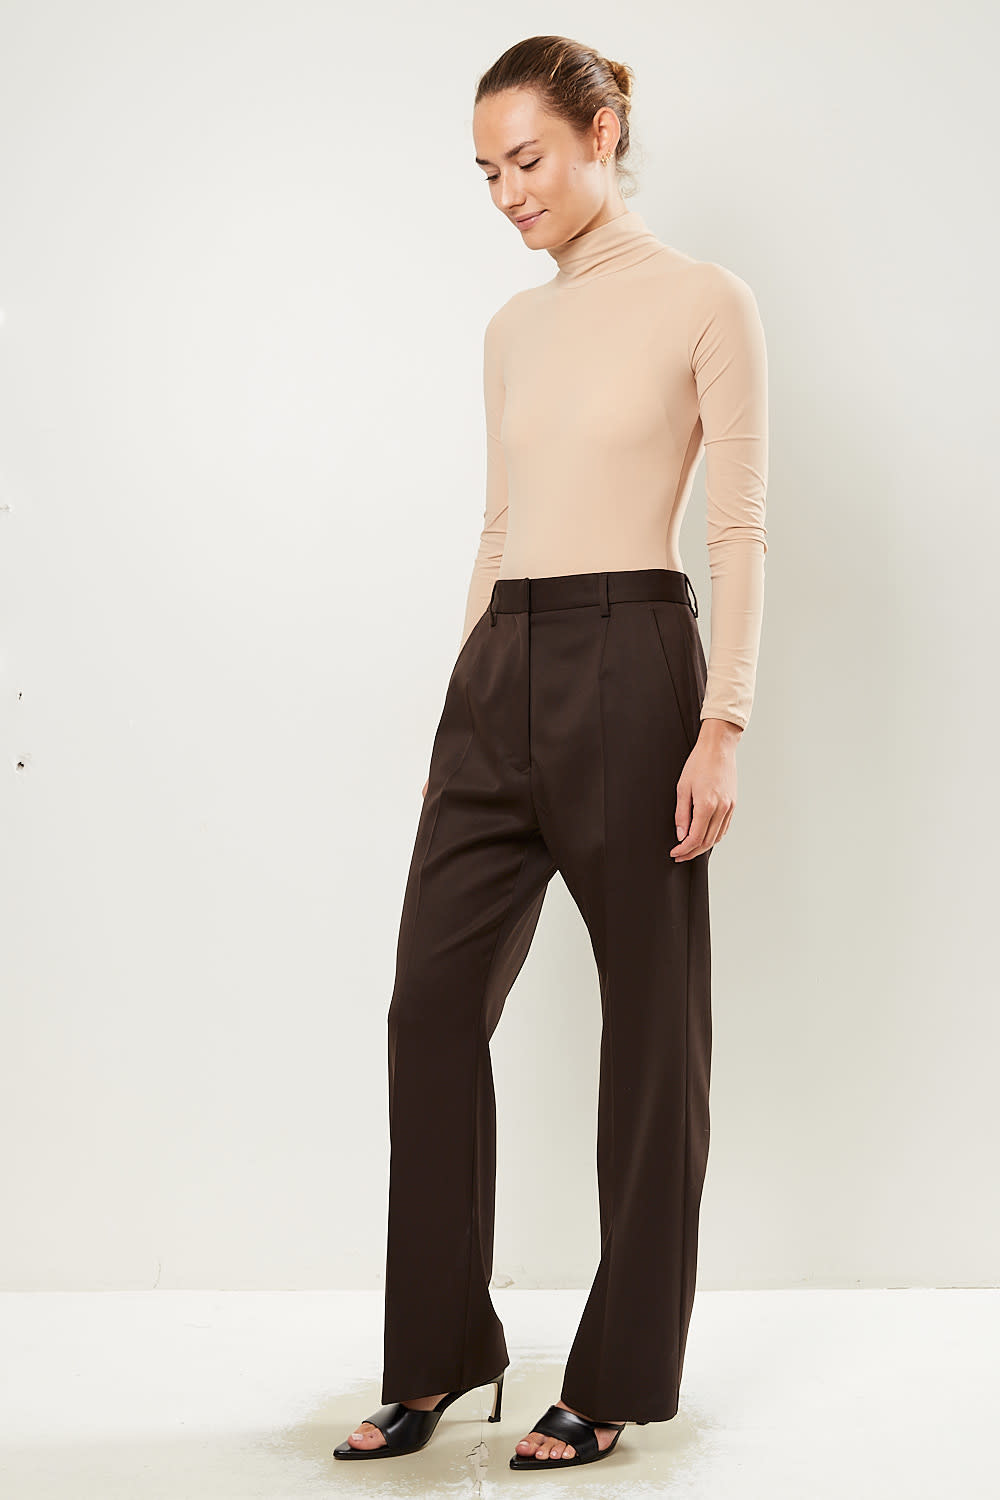 MM6 - Wool blend pants MM6